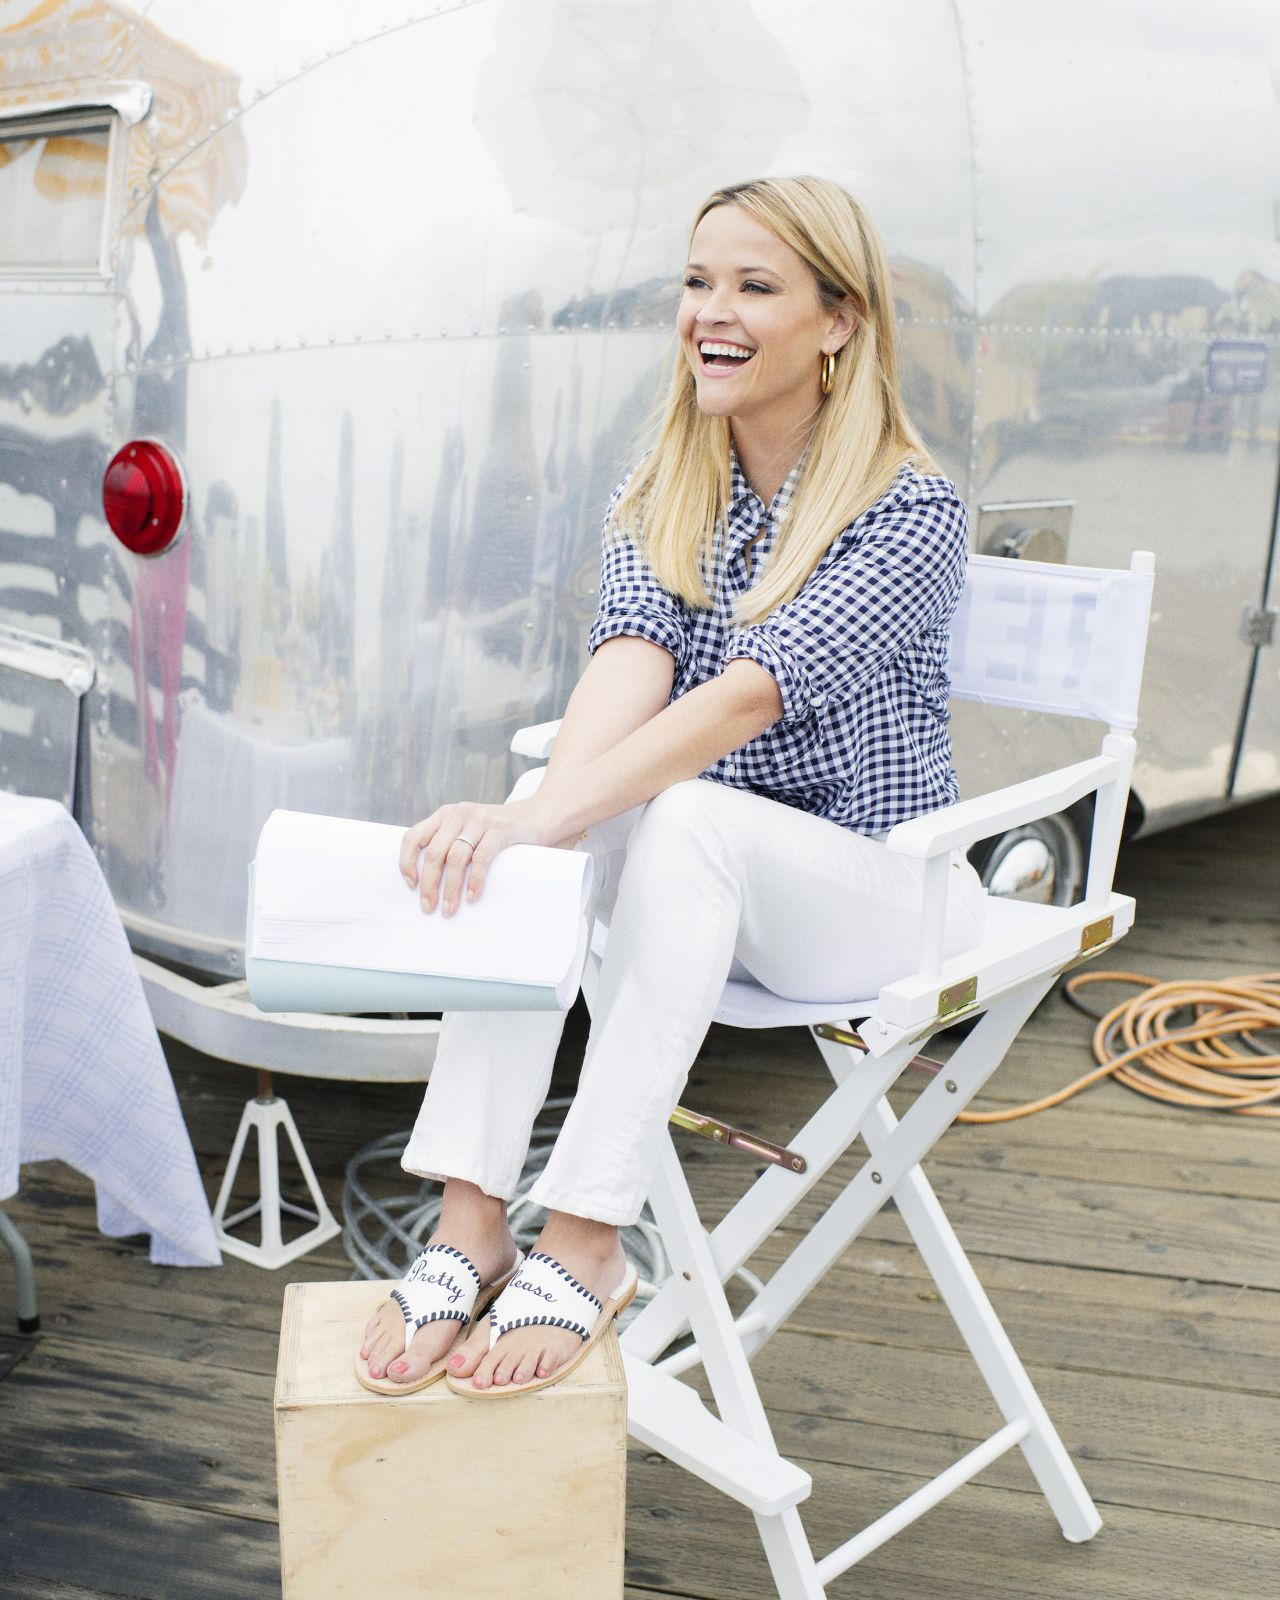 http://celebmafia.com/wp-content/uploads/2018/05/reese-witherspoon-draper-james-clothing-line-summer-campaign-2018-1.jpg